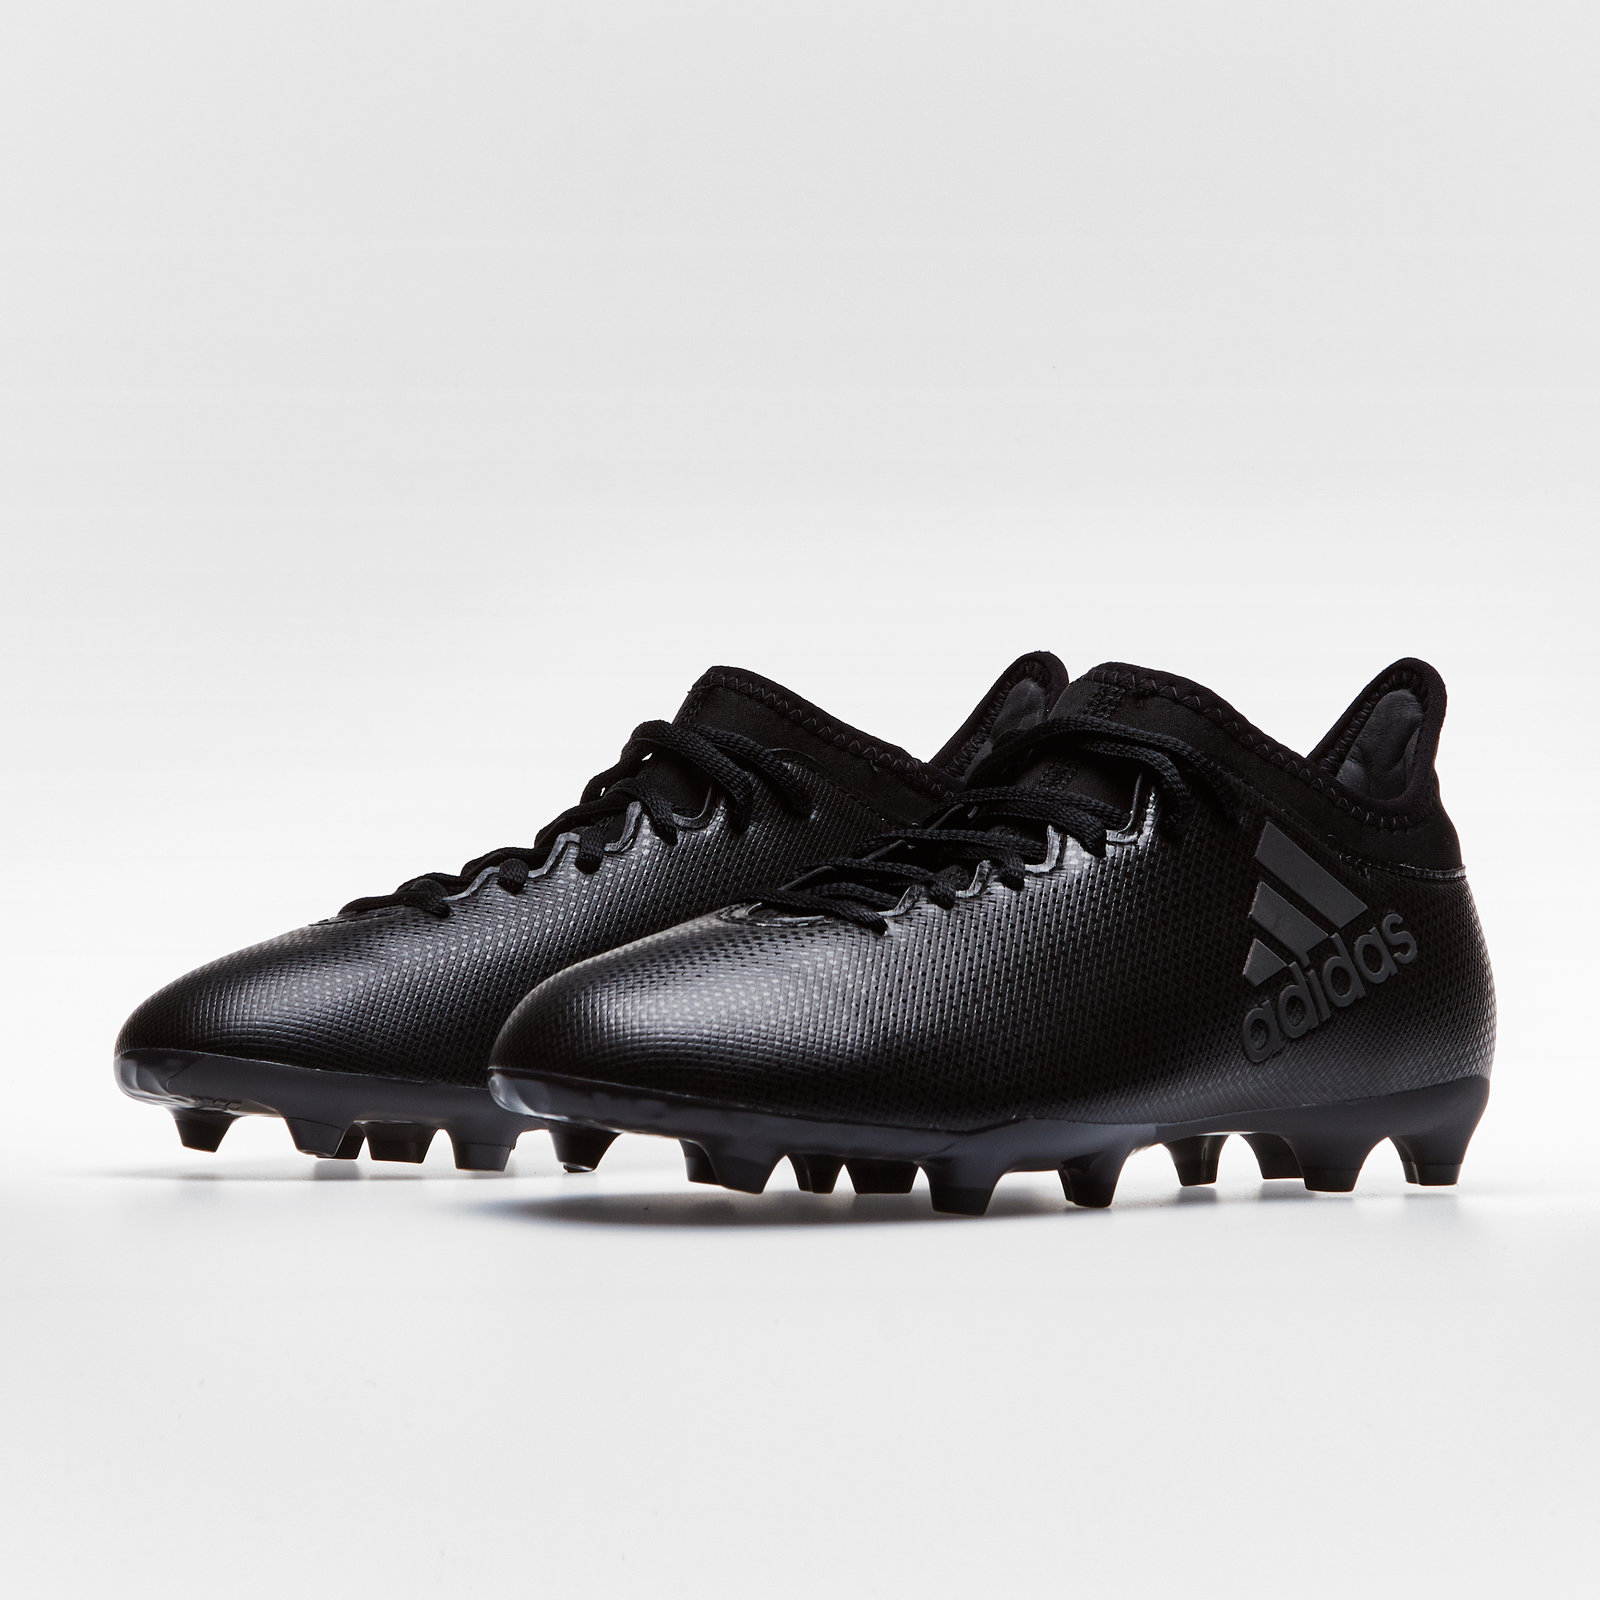 8838e7be3fb Details about adidas X 17.3 Firm Ground Kids Football Boots Studs Trainers  Sports Shoes Black